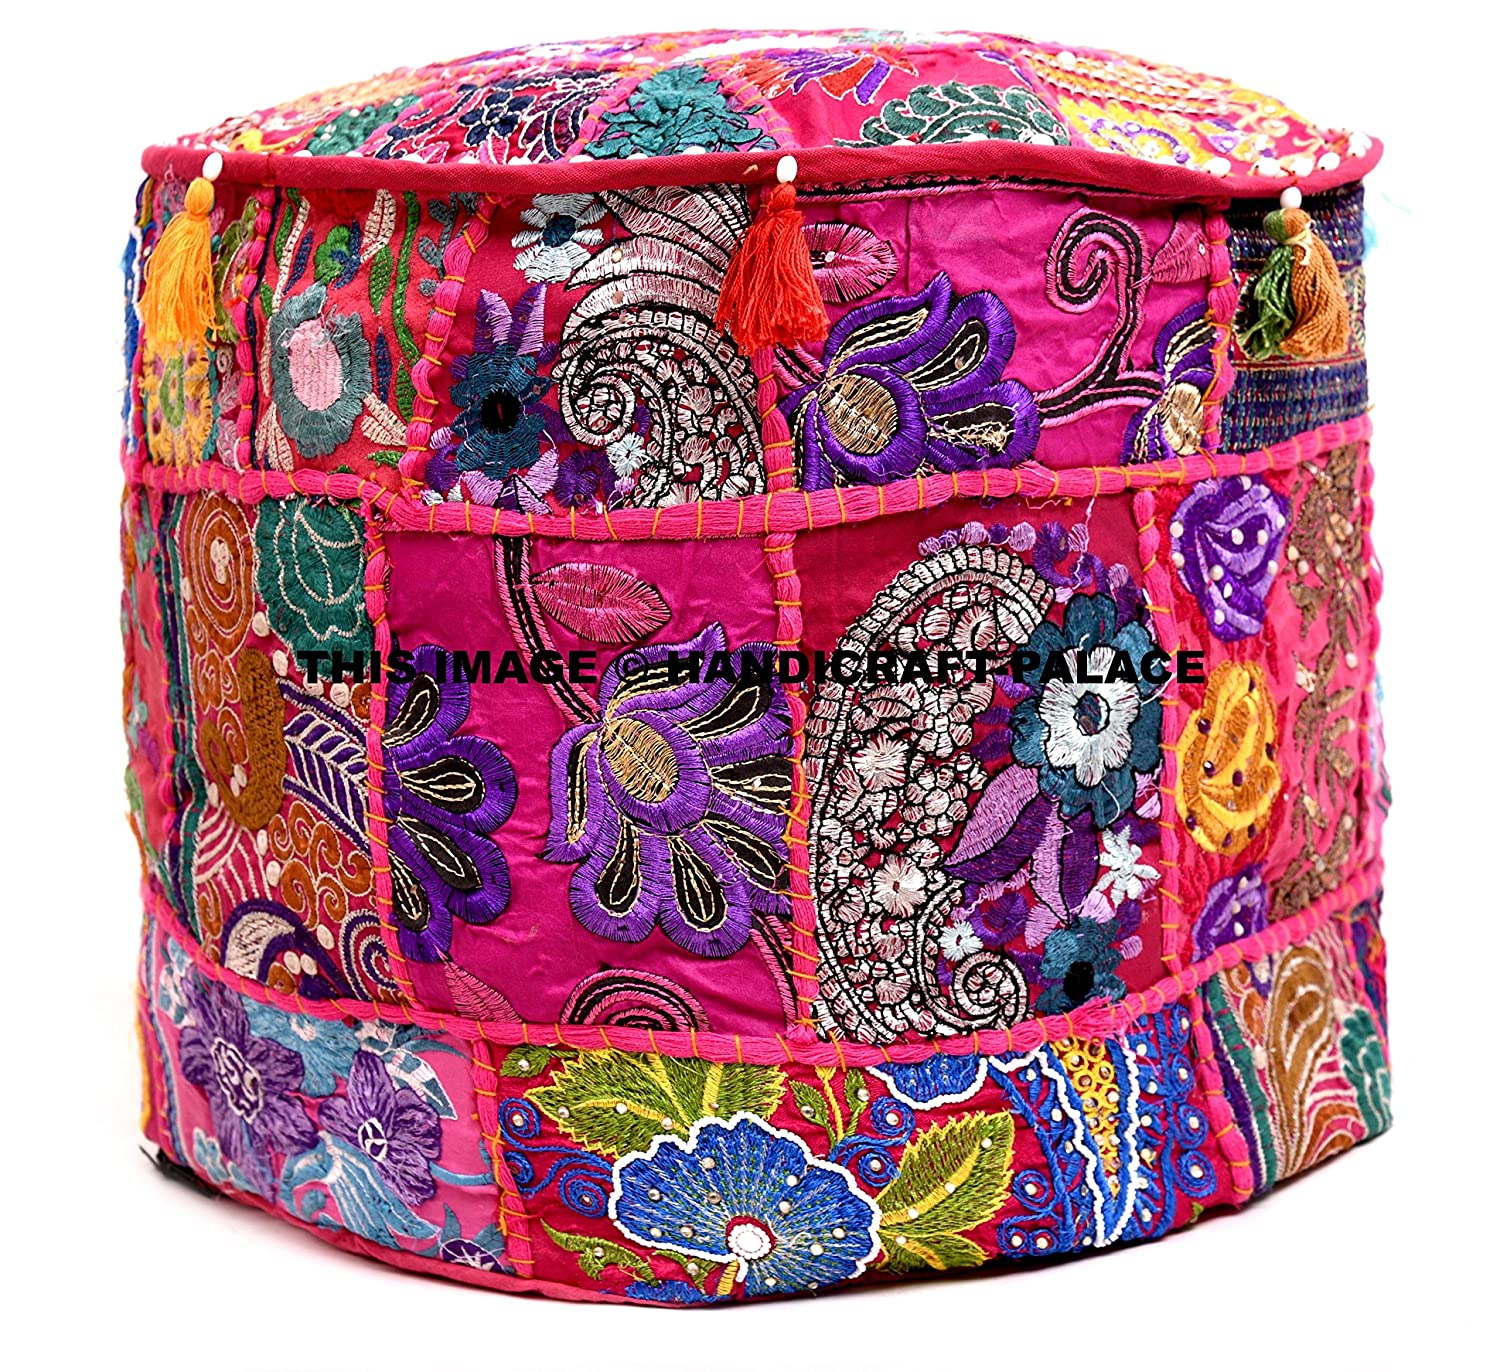 Beautiful Pink Color Ruond Ottoman Indian Patchwork Pouffe , Indian Traditional Home Decorative Handmade Cotton Ottoman Patchwork Foot Stool- Floor Cushion Decor , Embroidered Chair Cover Handicraft-Palace POSS-7